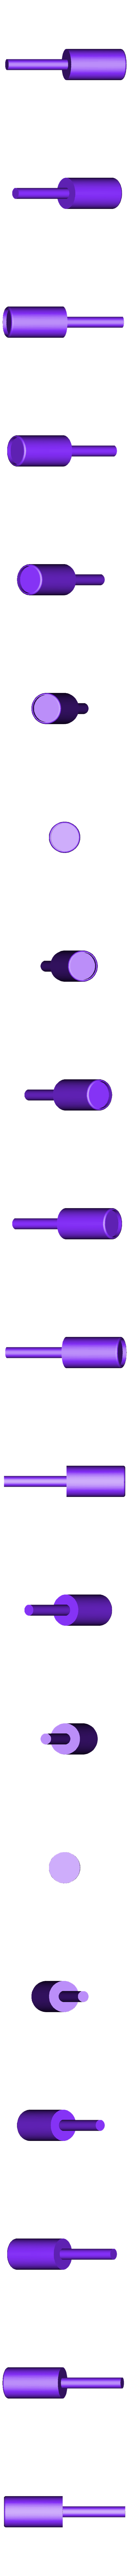 Sight_Lense_Top_1.stl Download free STL file Khan Rifle Concept from Marvels The Exiles • 3D print design, Dsk